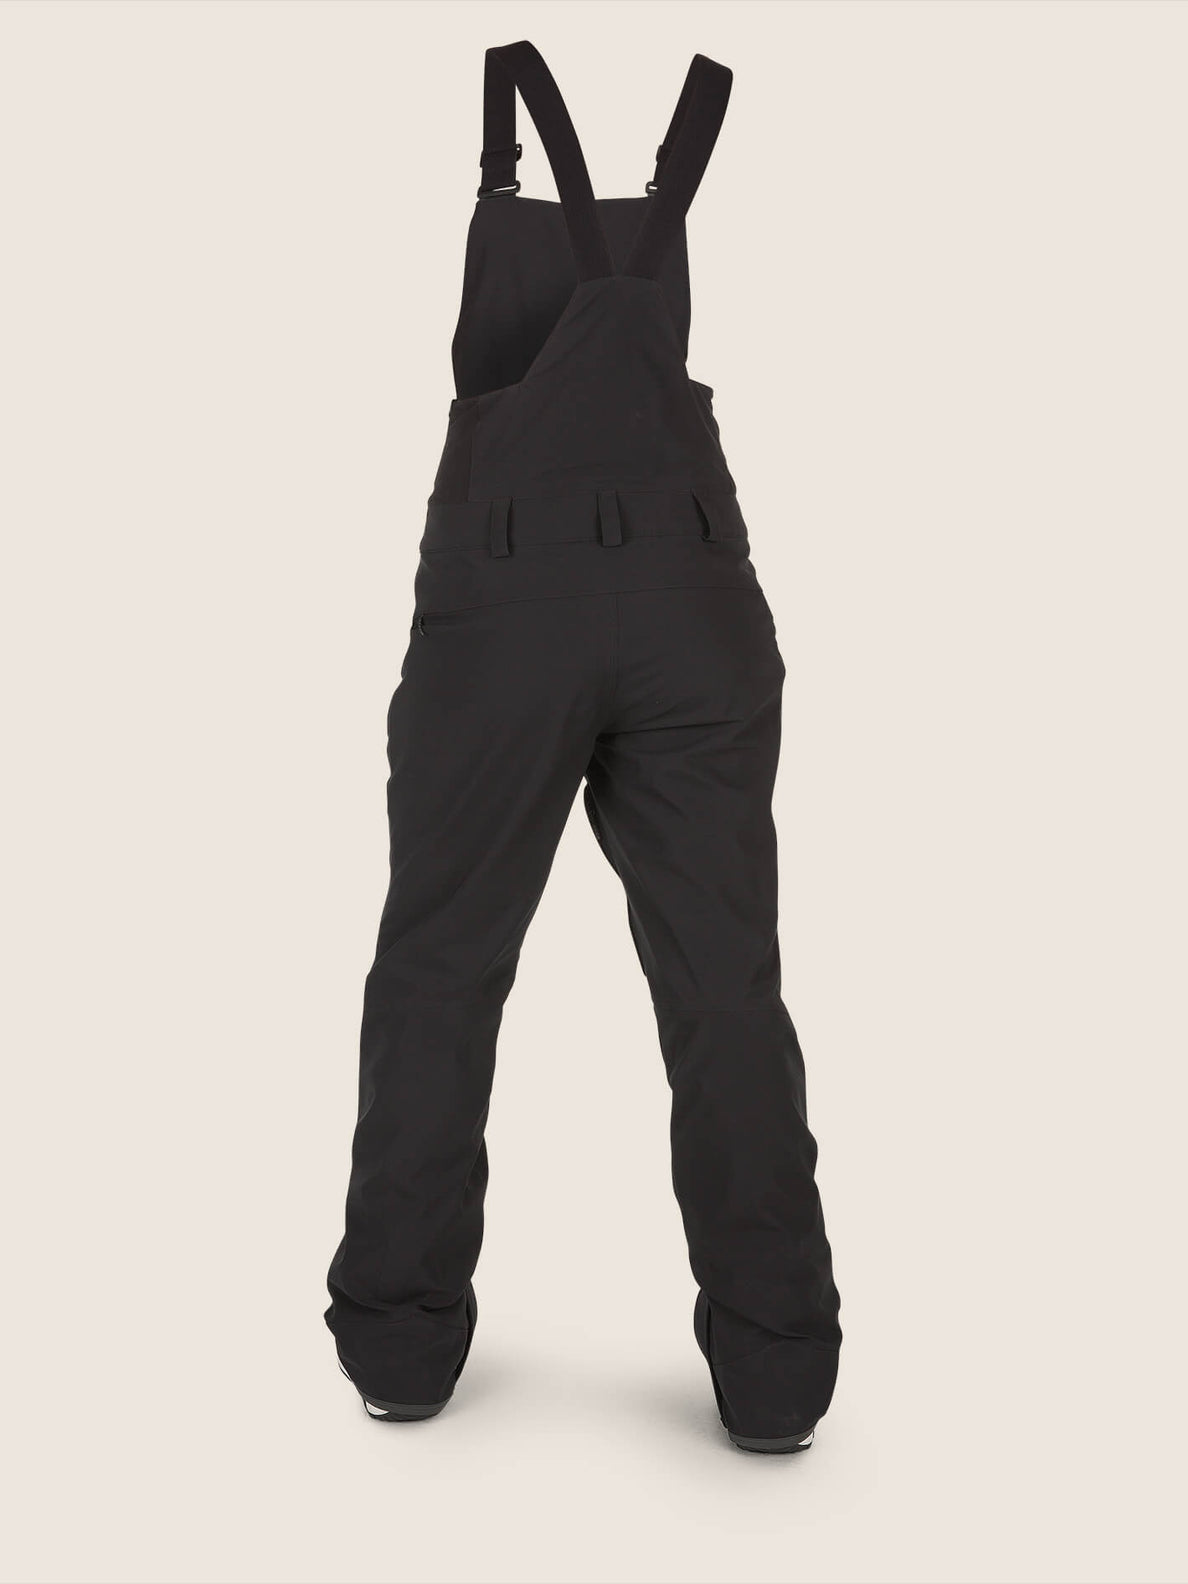 Elm Gore-tex Bib Overall In Black, Back View